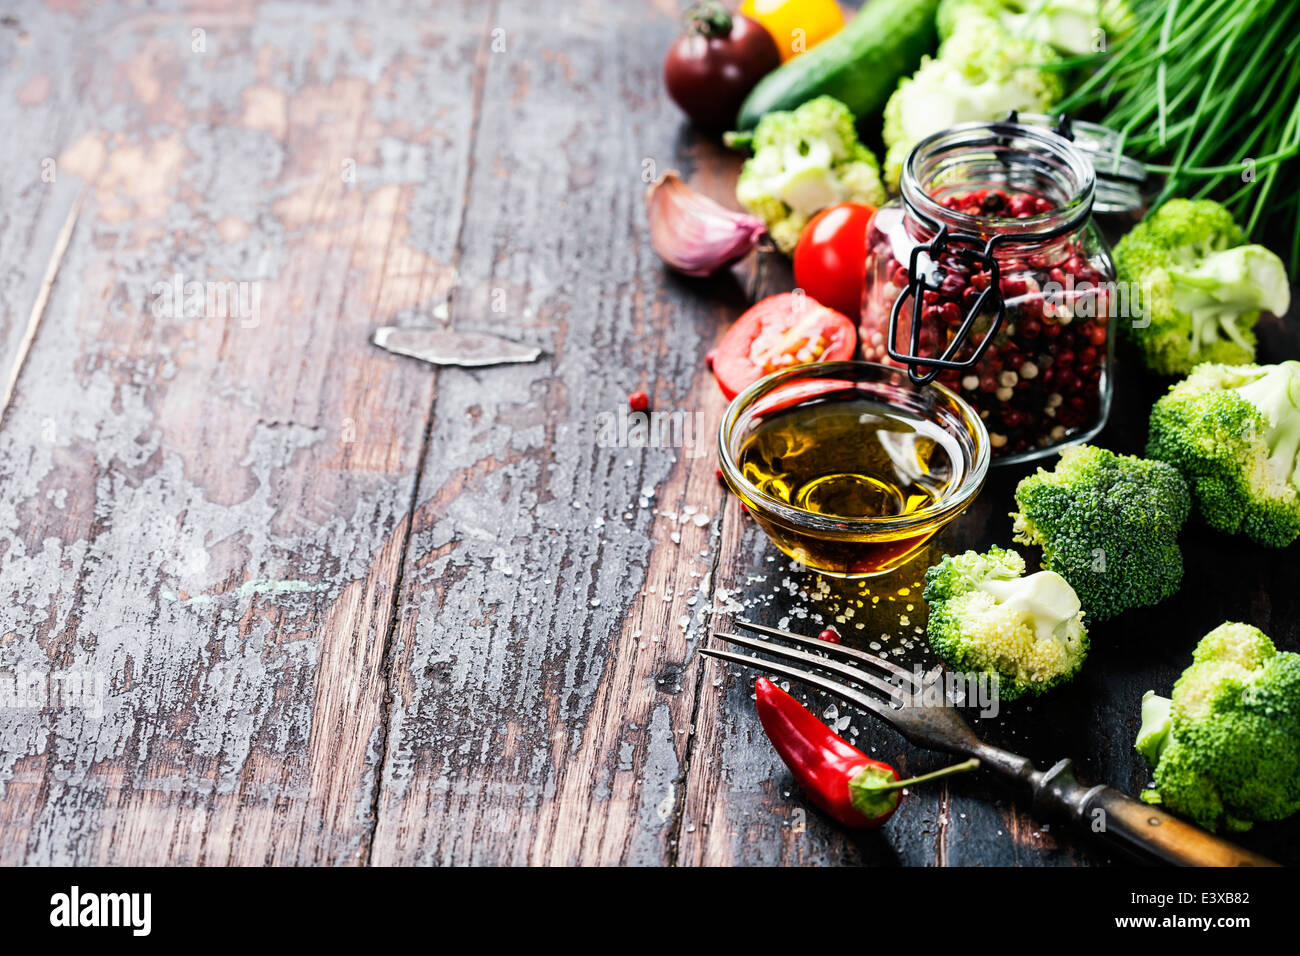 Fresh green broccoli and Healthy Organic Vegetables on a Wooden Background. - Stock Image